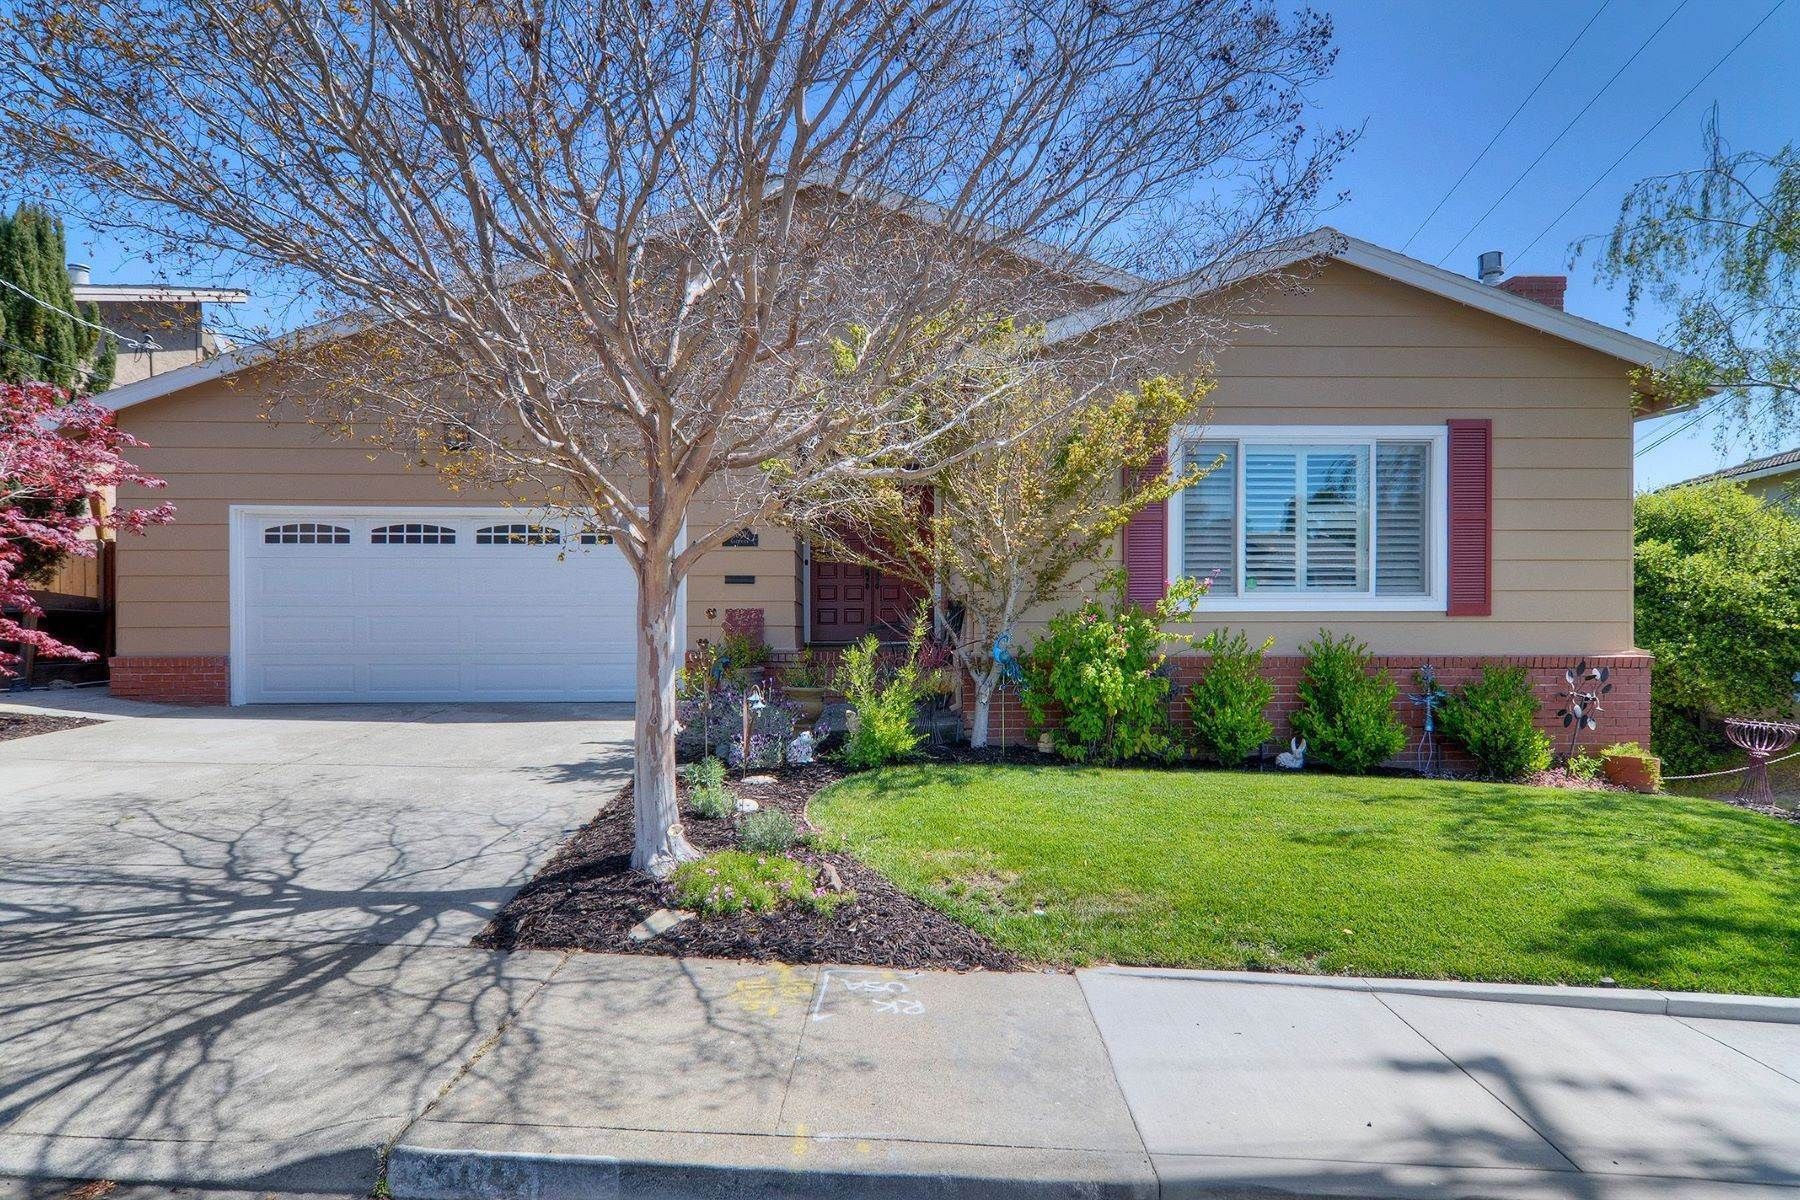 Single Family Homes for Sale at Comfort and Style Outfitted for the 21st Century 1001 Crestview Drive San Carlos, California 94070 United States